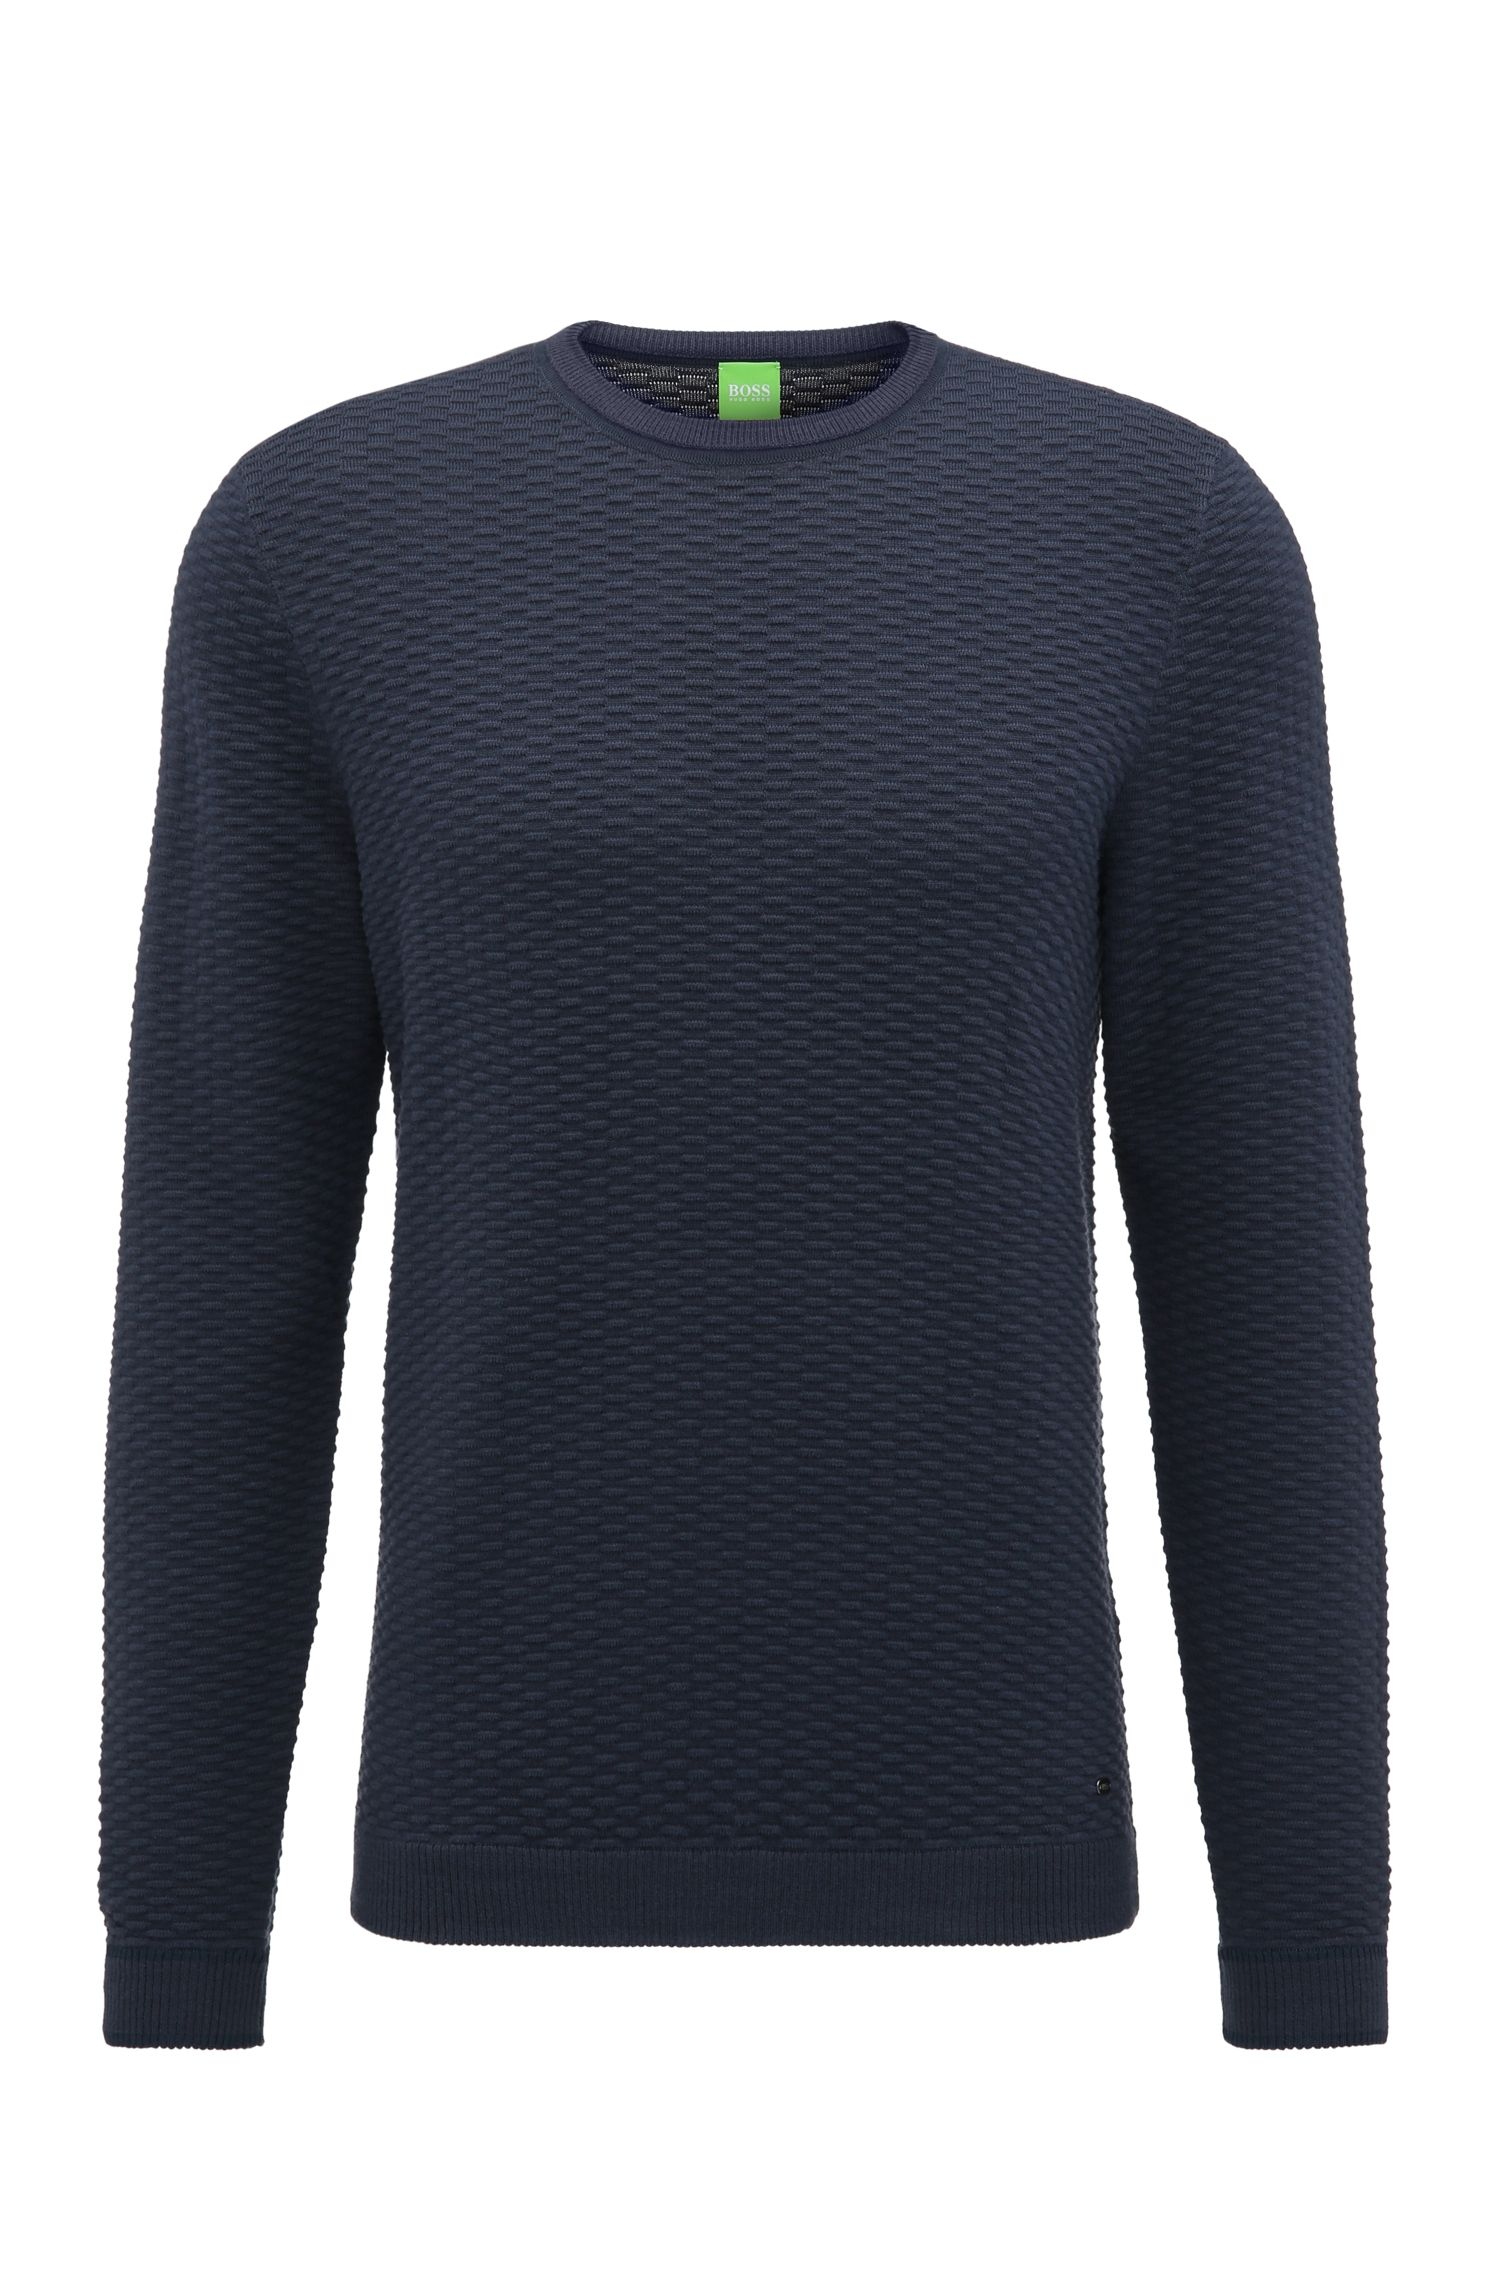 Regular-fit sweater in a structured cotton blend